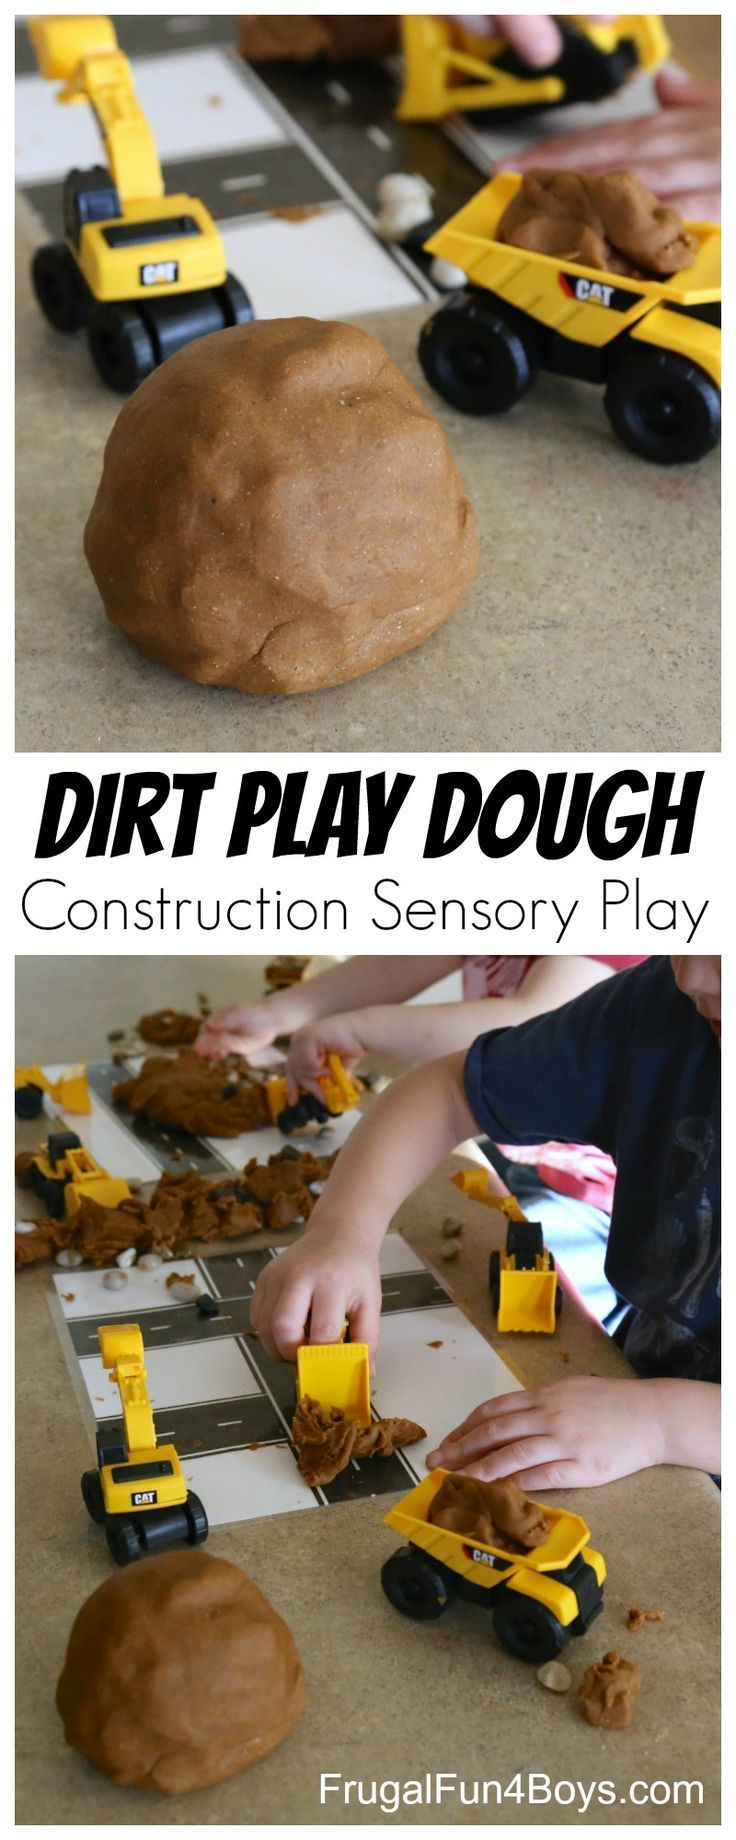 How to Make Dirt Play Dough - Fun construction themed sensory play idea!